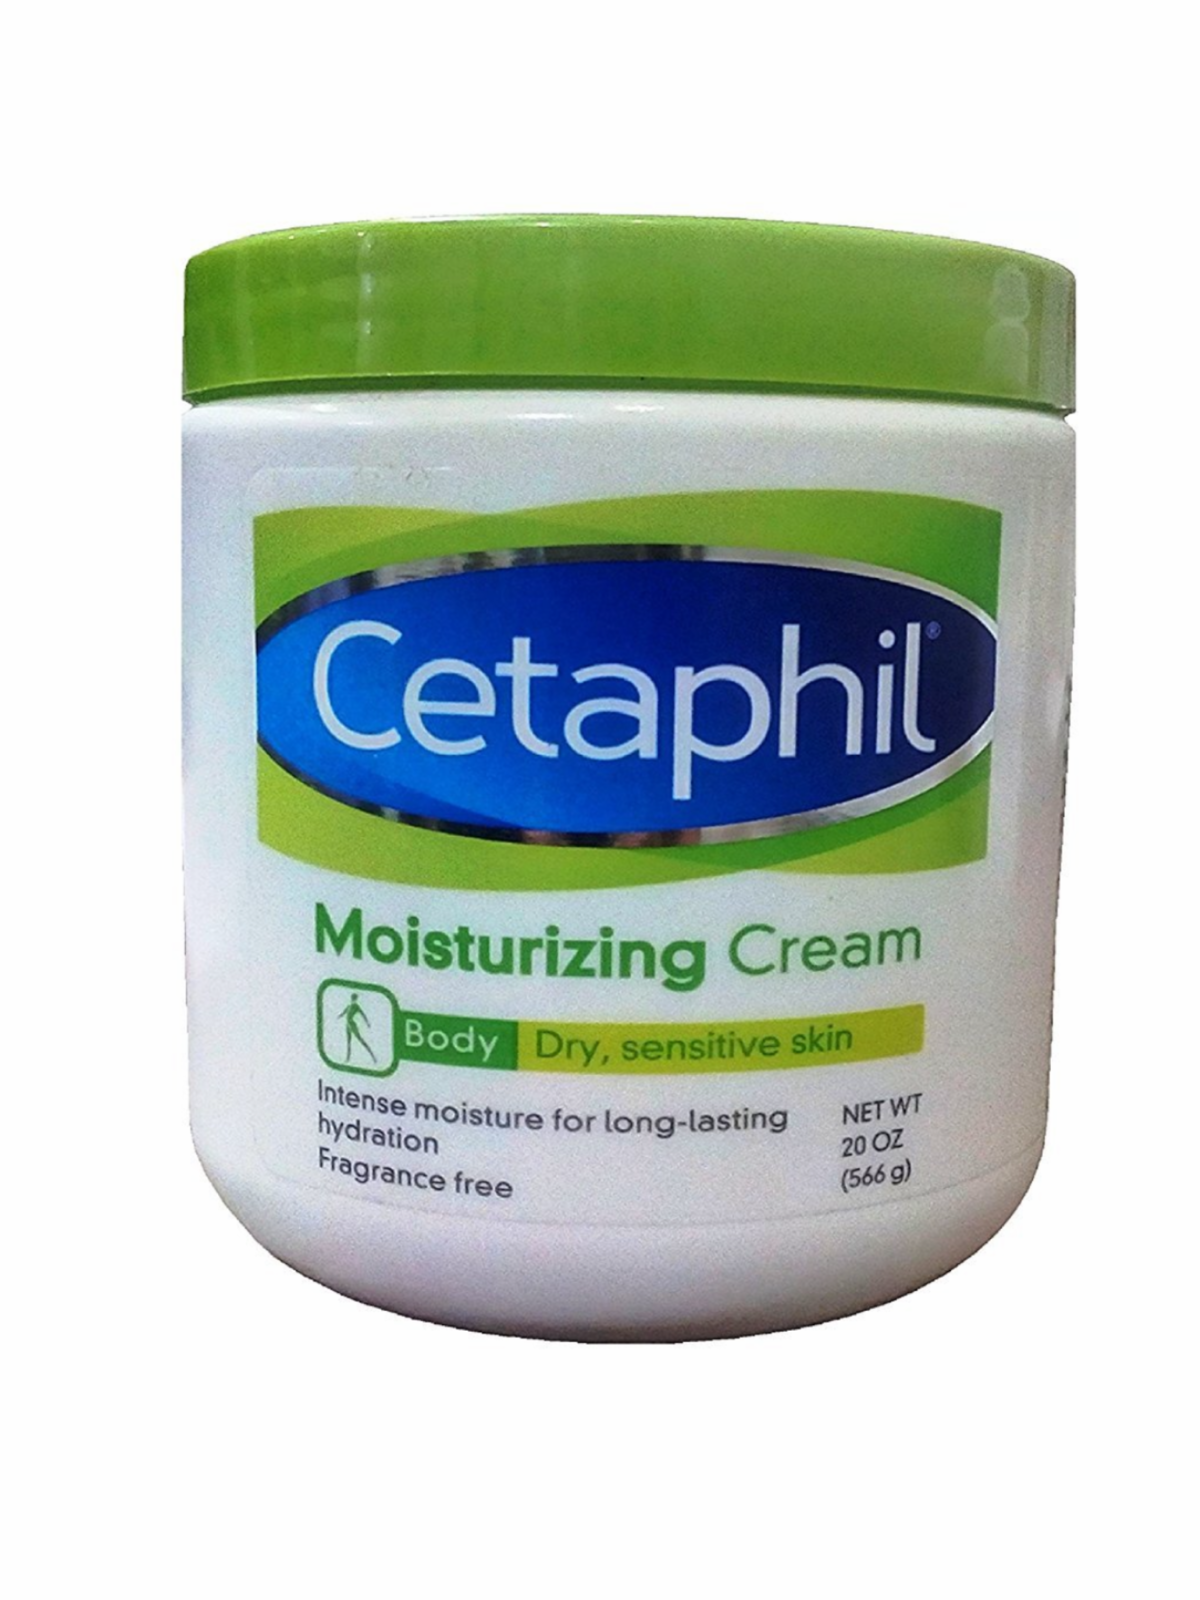 Cetaphil Moisturizing Cream For Dry Sensitive Skin Eczema Non Greasy 20 Oz Cetaphil Dry Sensitive Skin Fragrance Free Products